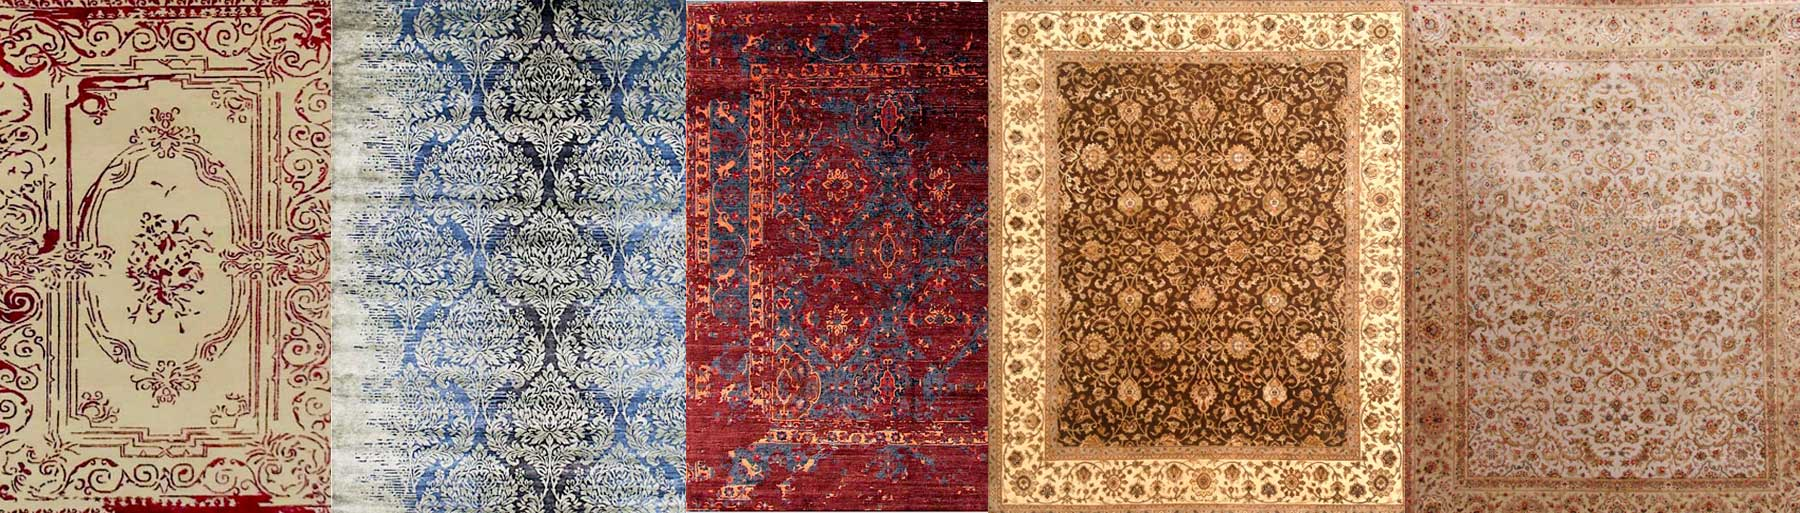 Rugs manufacturers in india